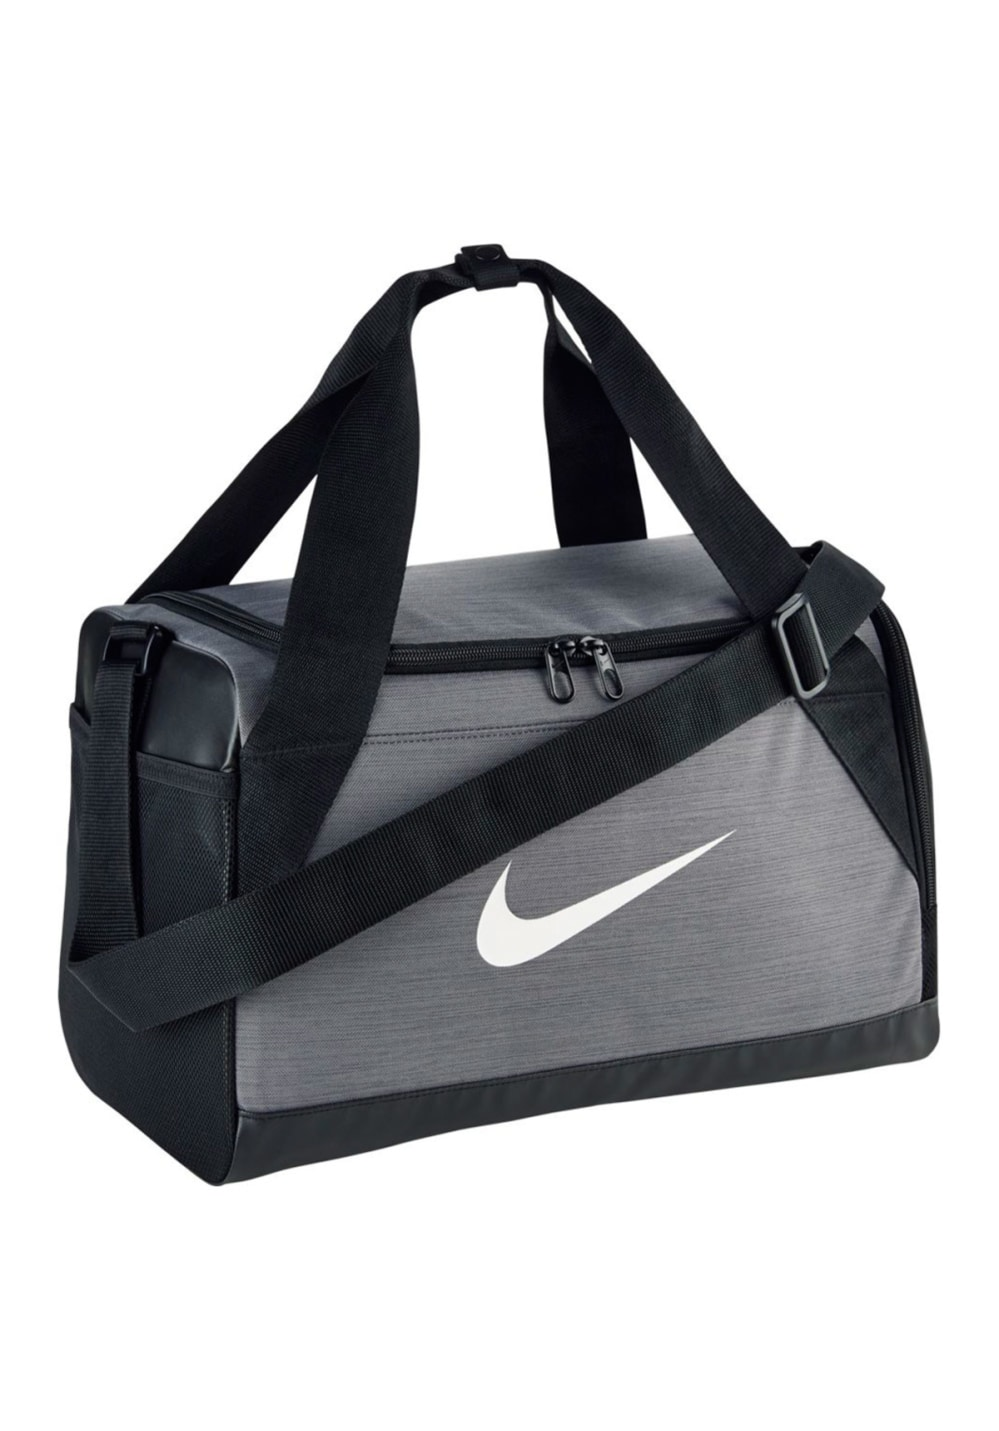 ... Nike Brasilia Duffel Bag Extra-Small - Sports bags - Black. Back to  Overview. 1  2. Previous 5e1763cfb8